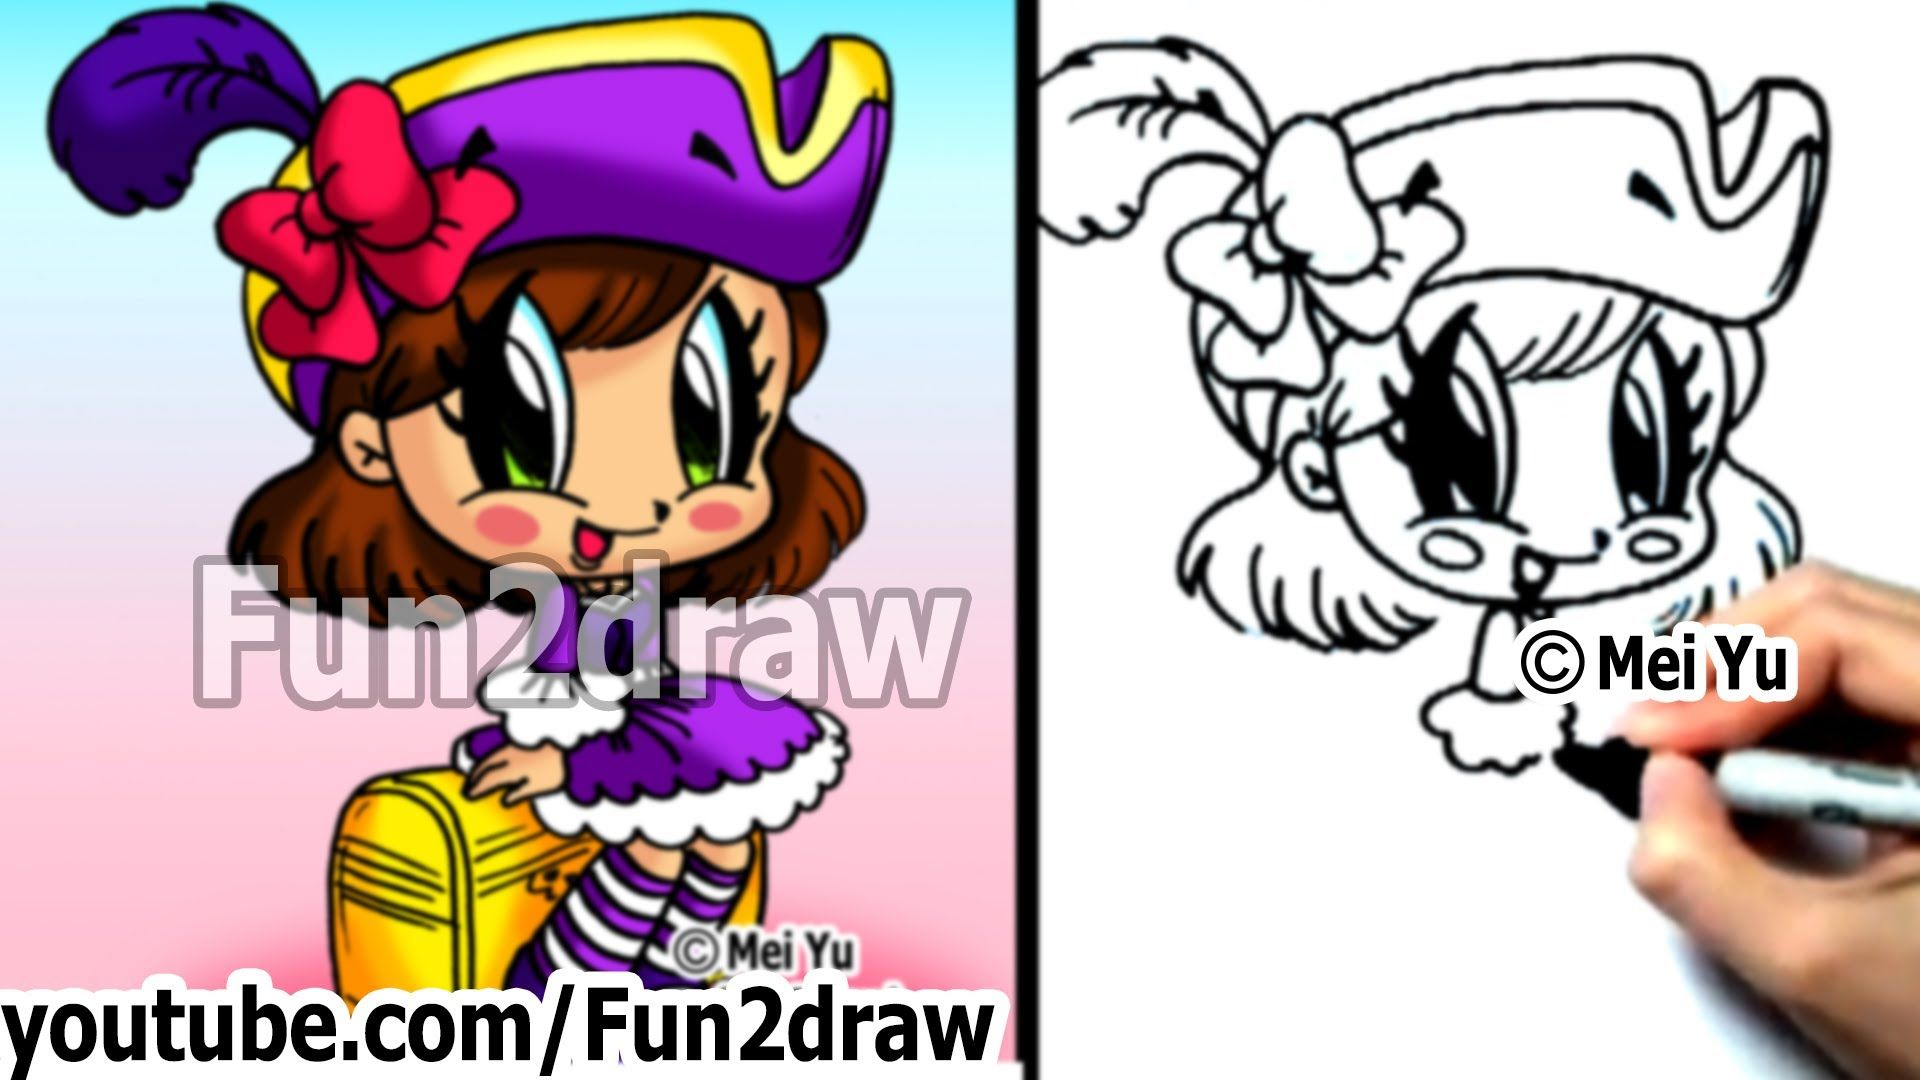 17 Best Images About Fun2draw On Pinterest How To Draw, Kawaii Drawings And  How To